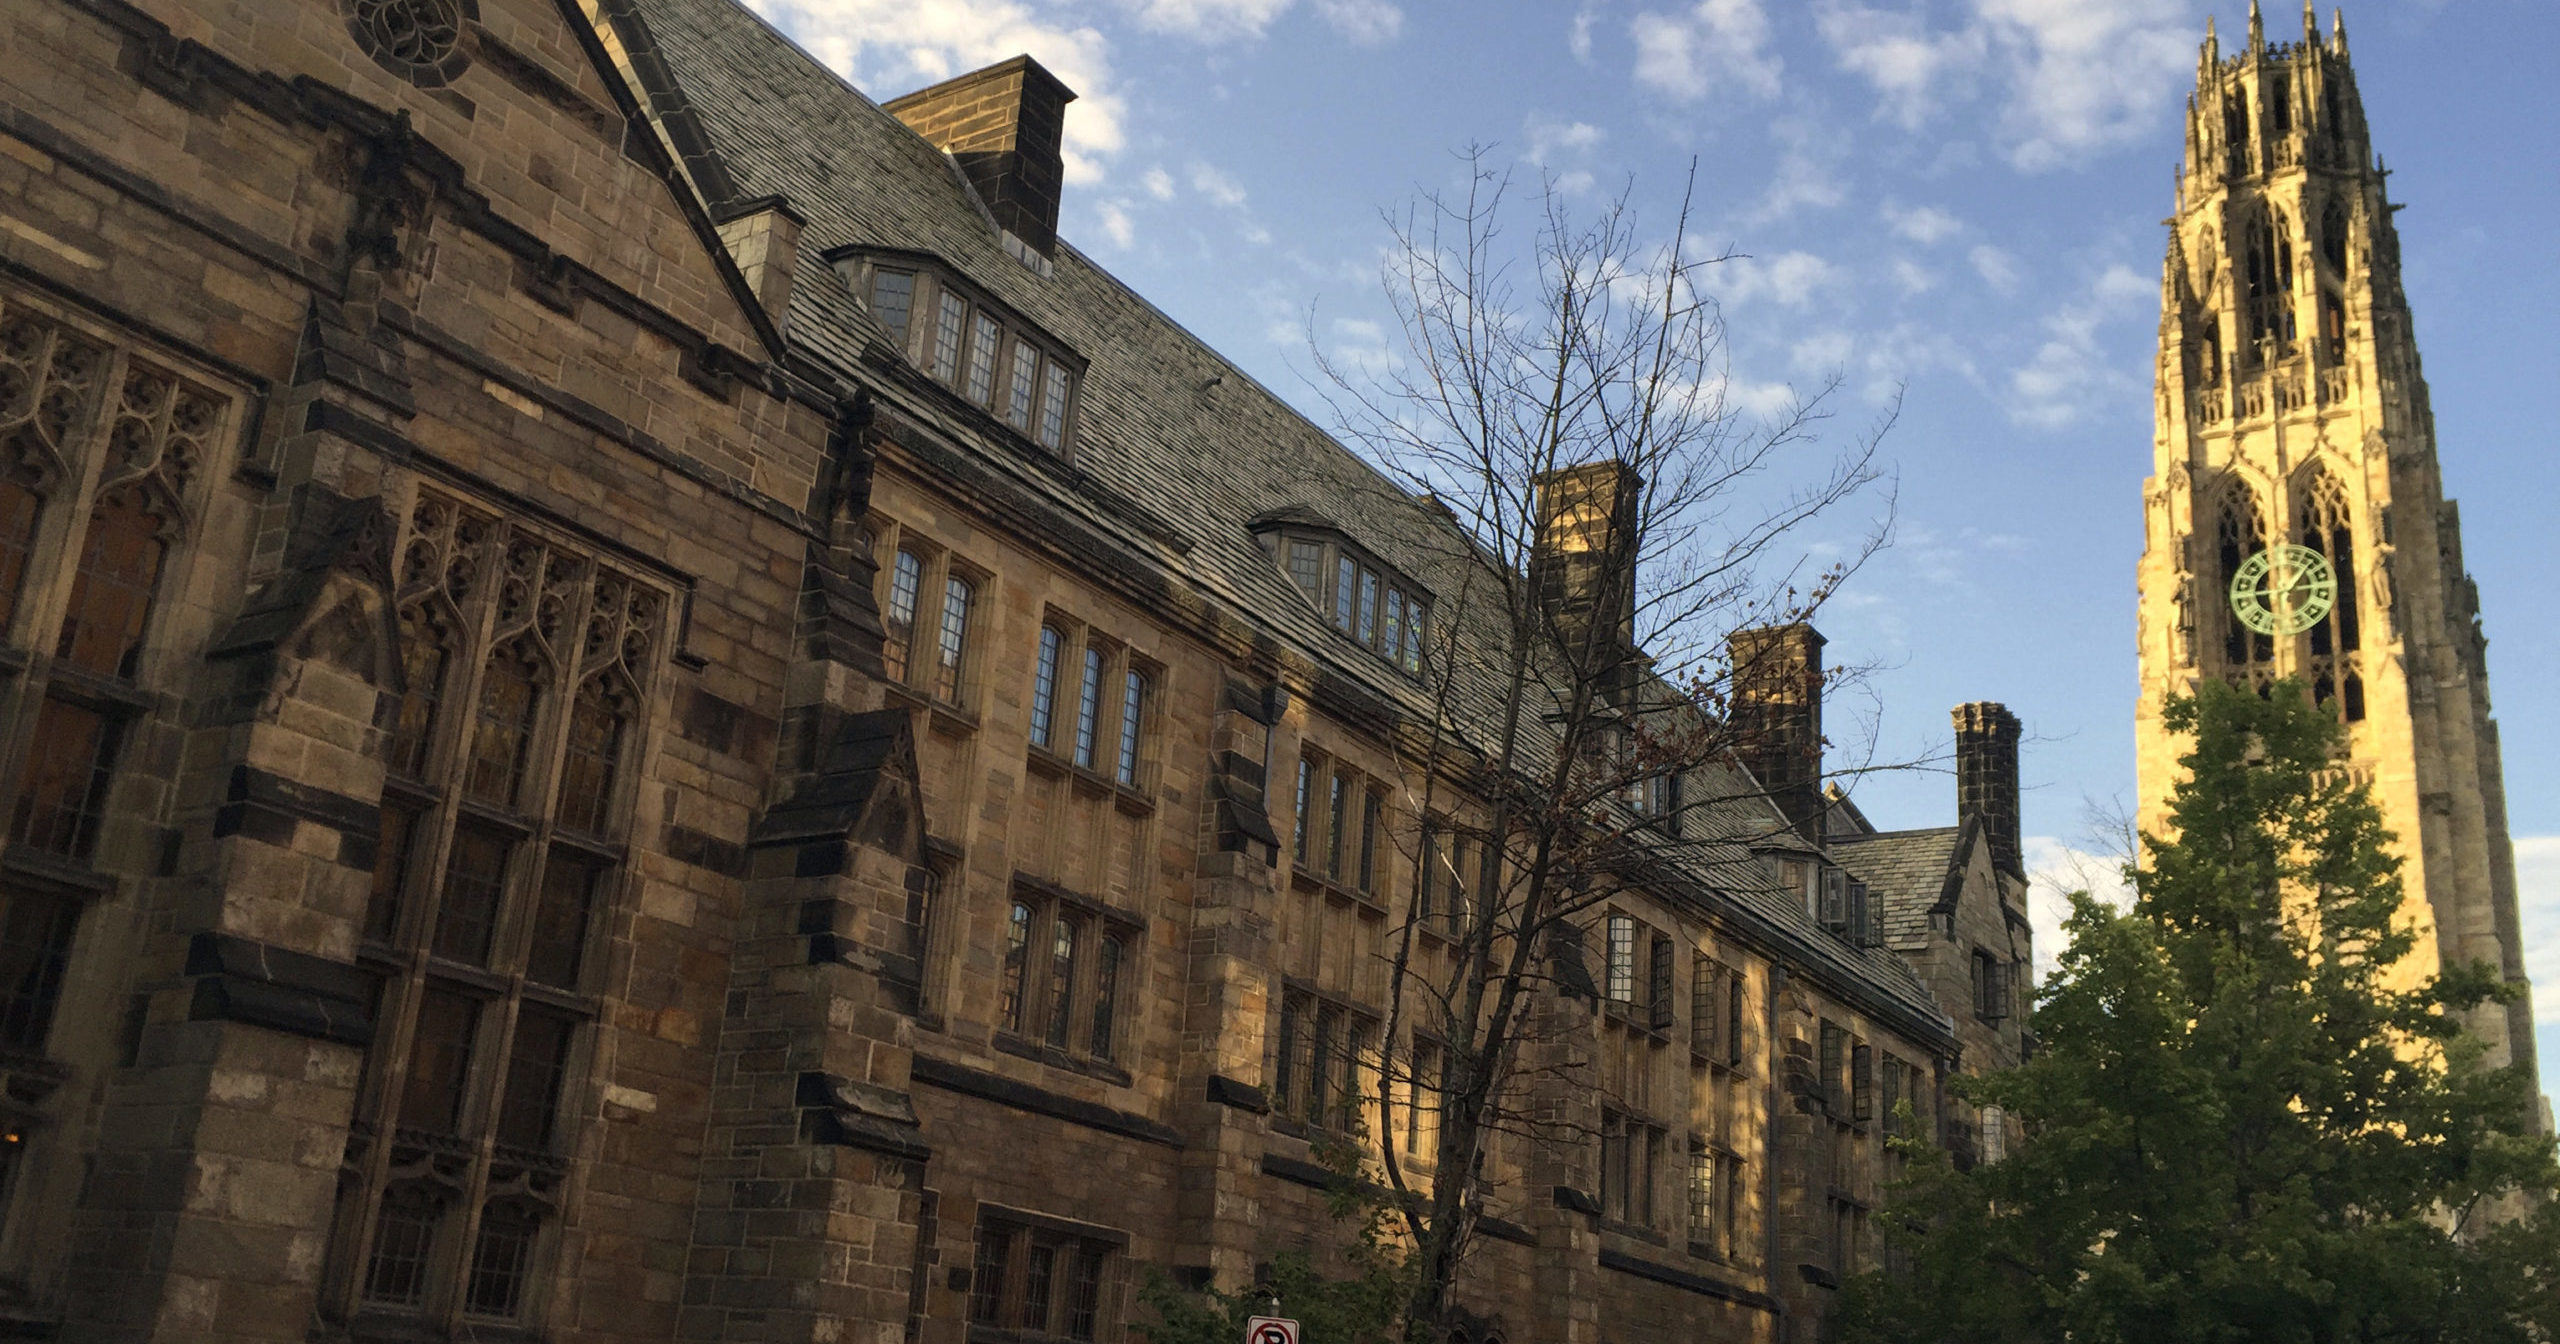 This Sept. 9, 2016, photo shows Harkness Tower on the campus of Yale University in New Haven, Conn. A Justice Department investigation has found Yale University is illegally discriminating against Asian-American and white applications, in violation of federal civil rights law, officials said Thursday.